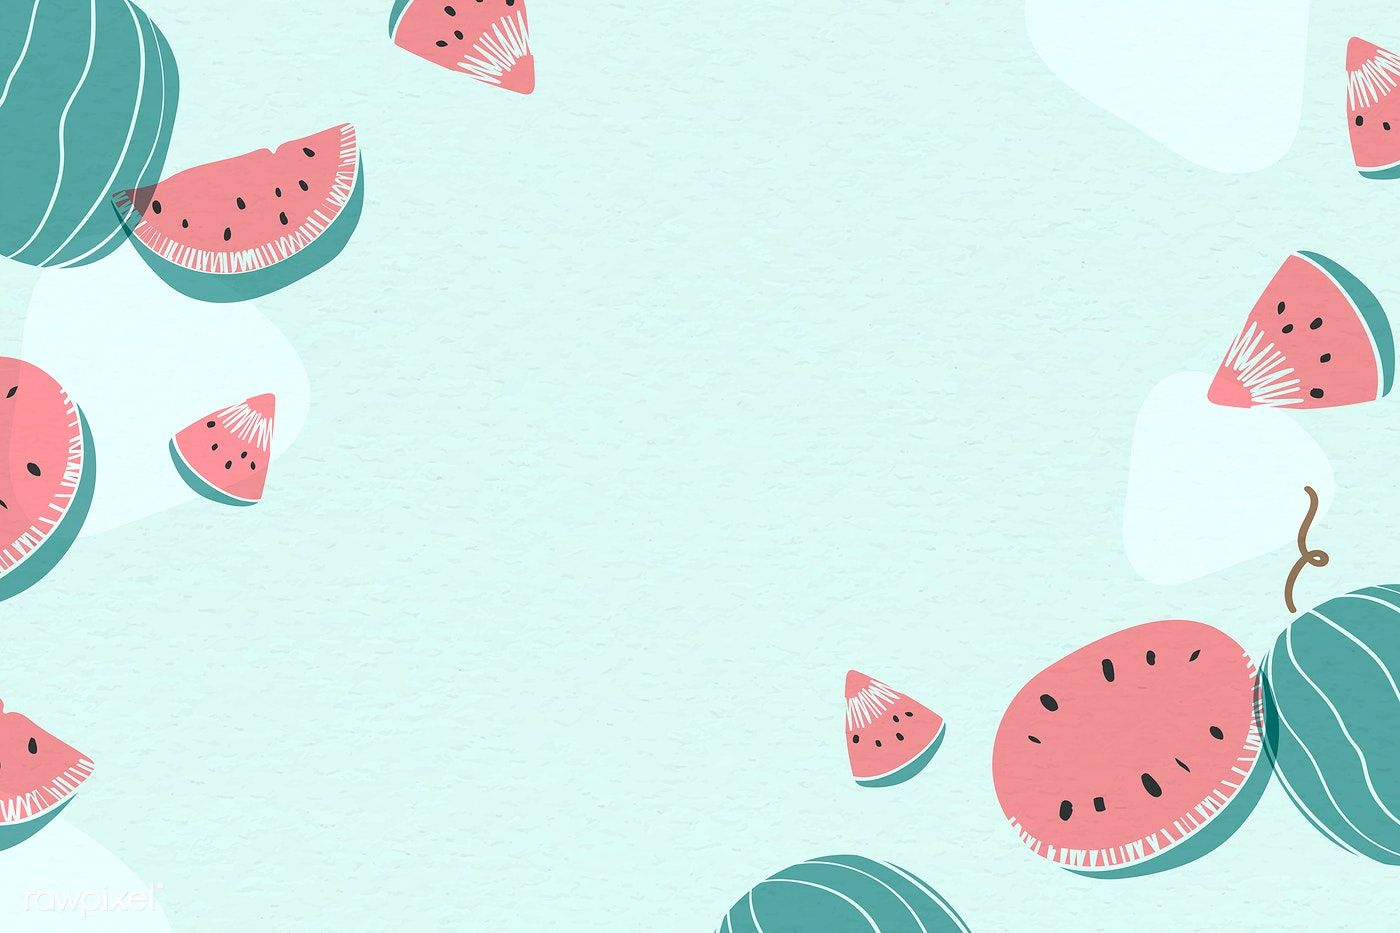 Download Premium Vector Of Watermelon Patterned Background With Design Watermelon Background Powerpoint Background Design Background Patterns